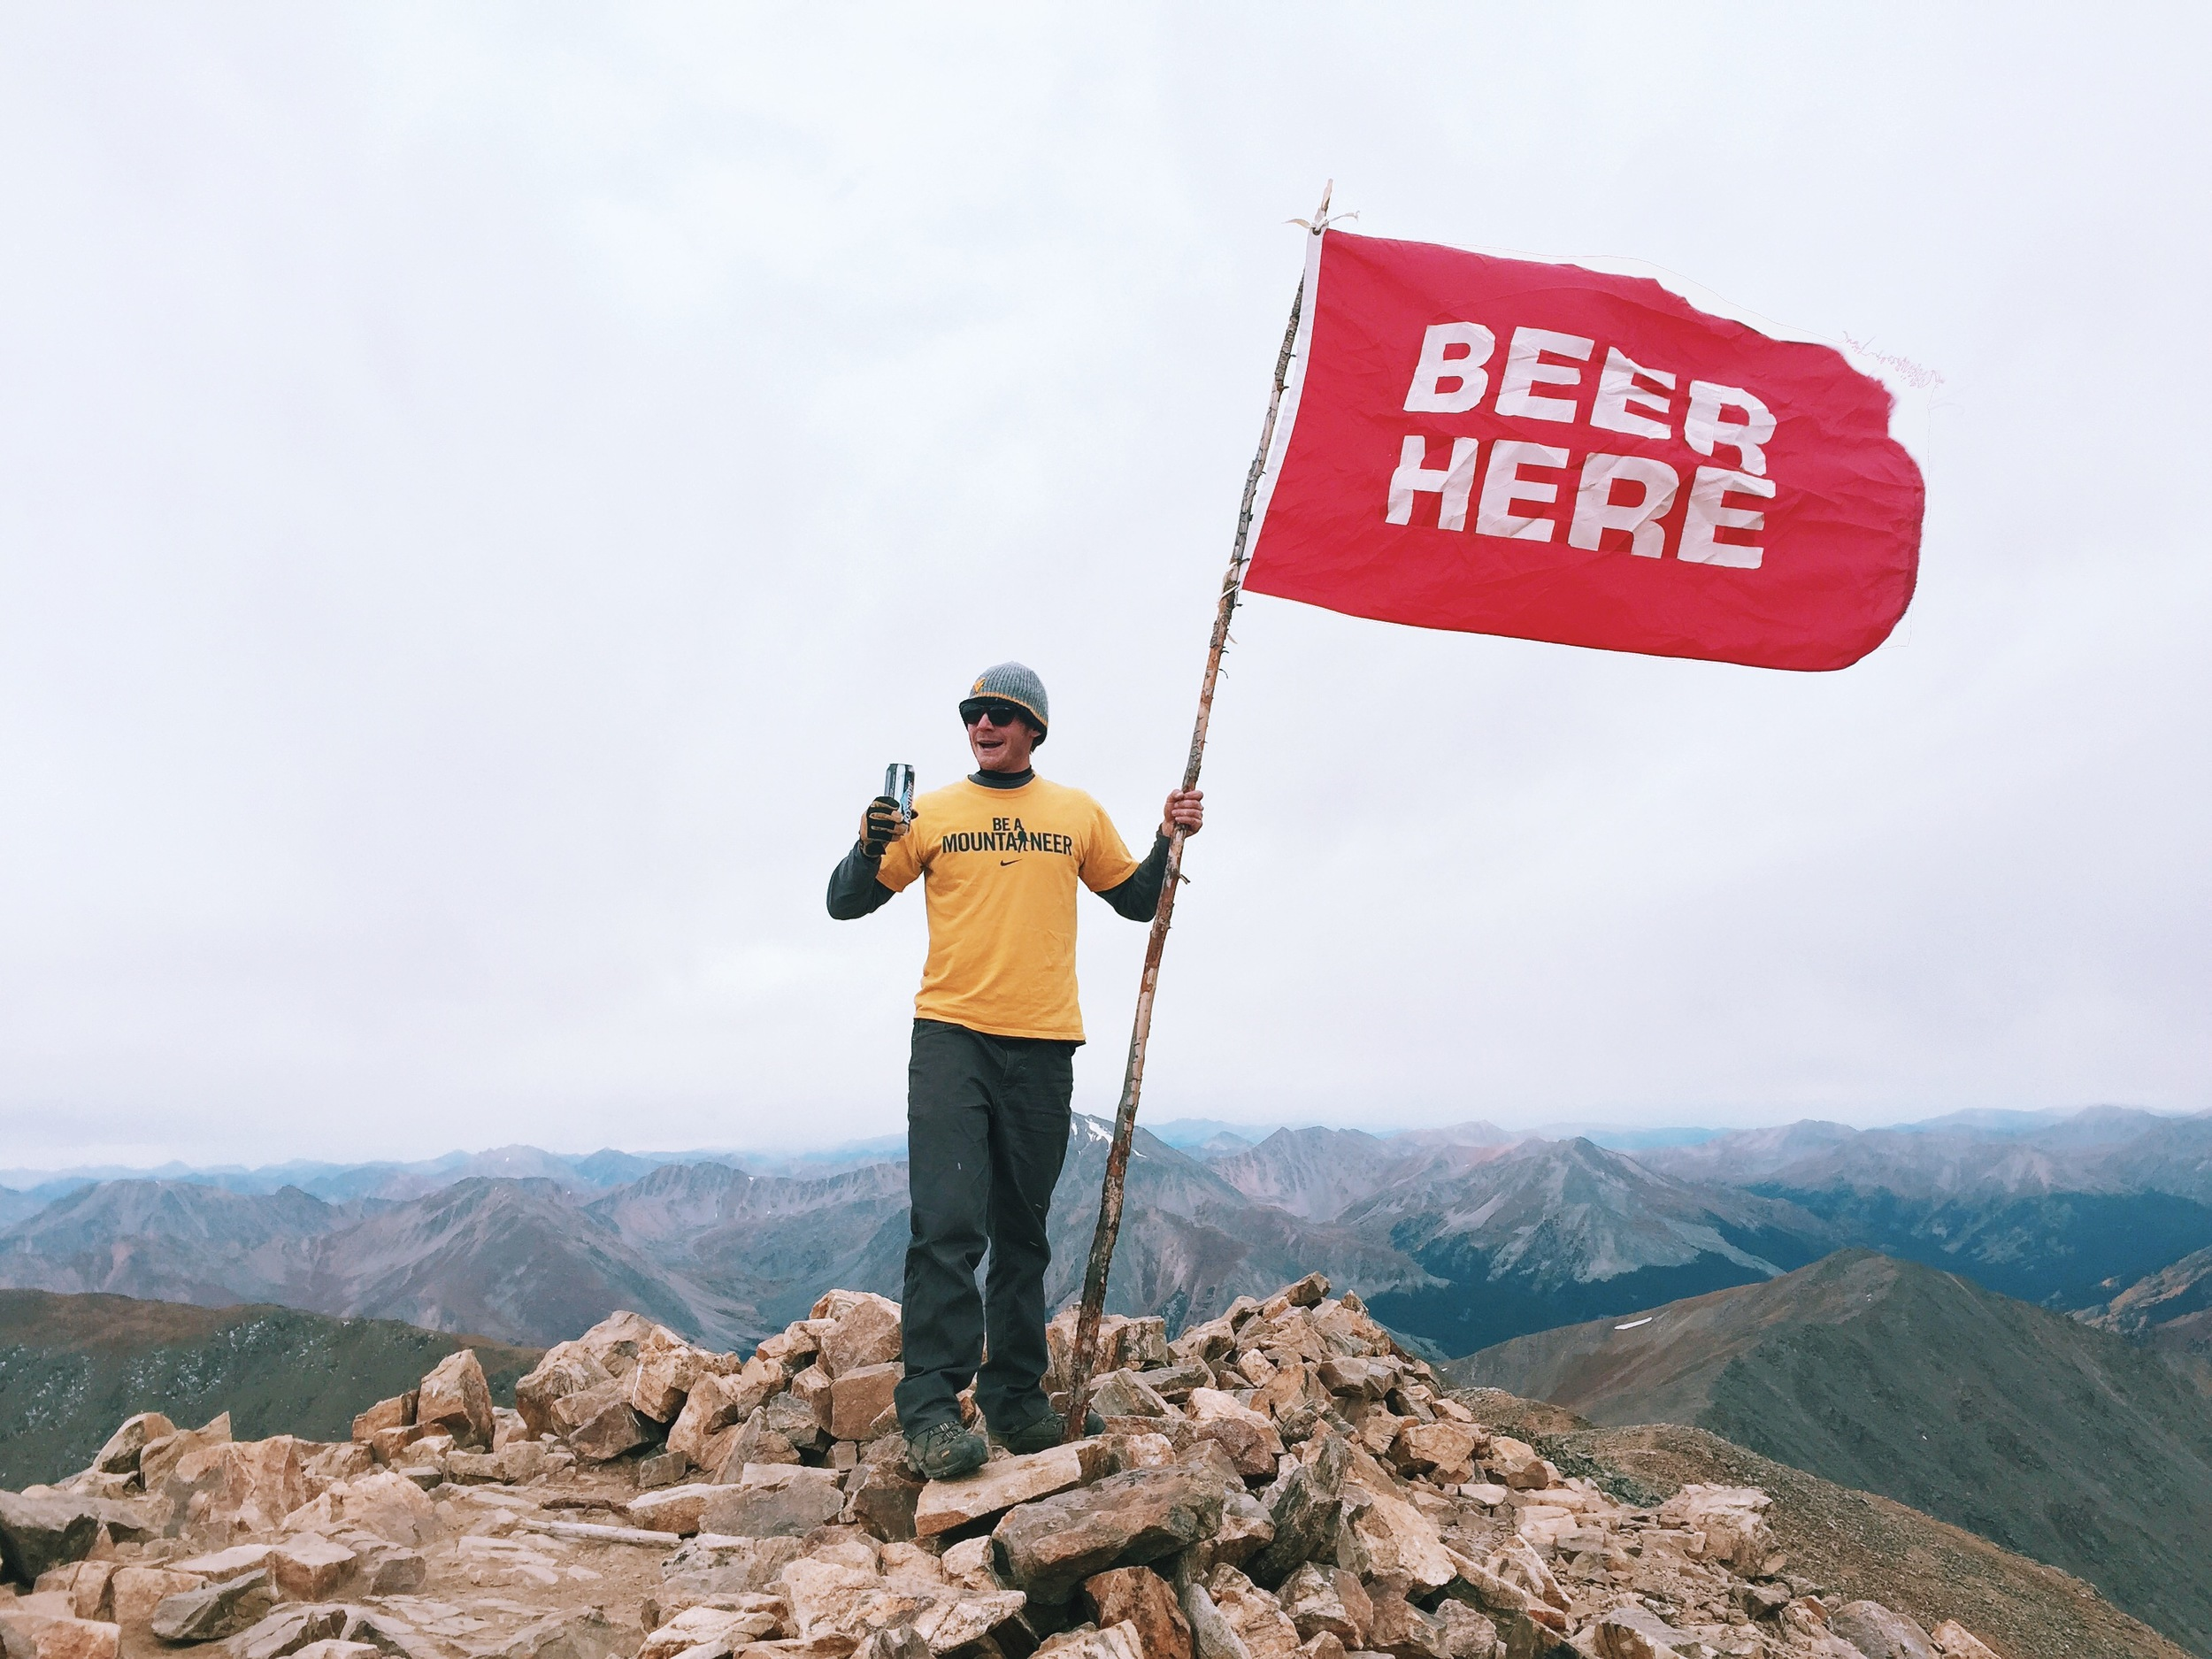 Man and Beer met on the summit of Mt. Elbert